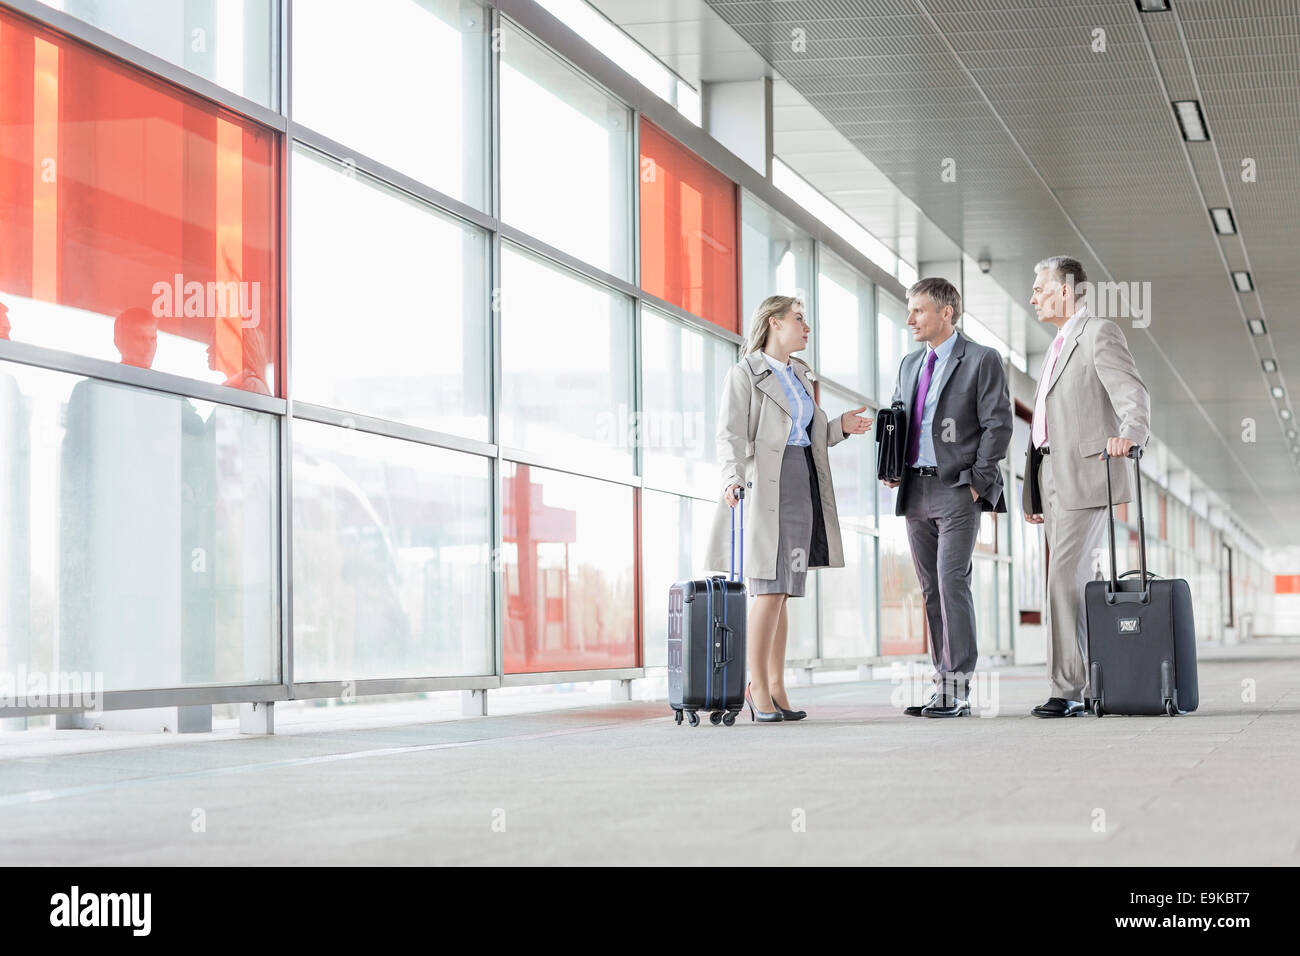 Full length of businesspeople with luggage talking on railroad platform - Stock Image